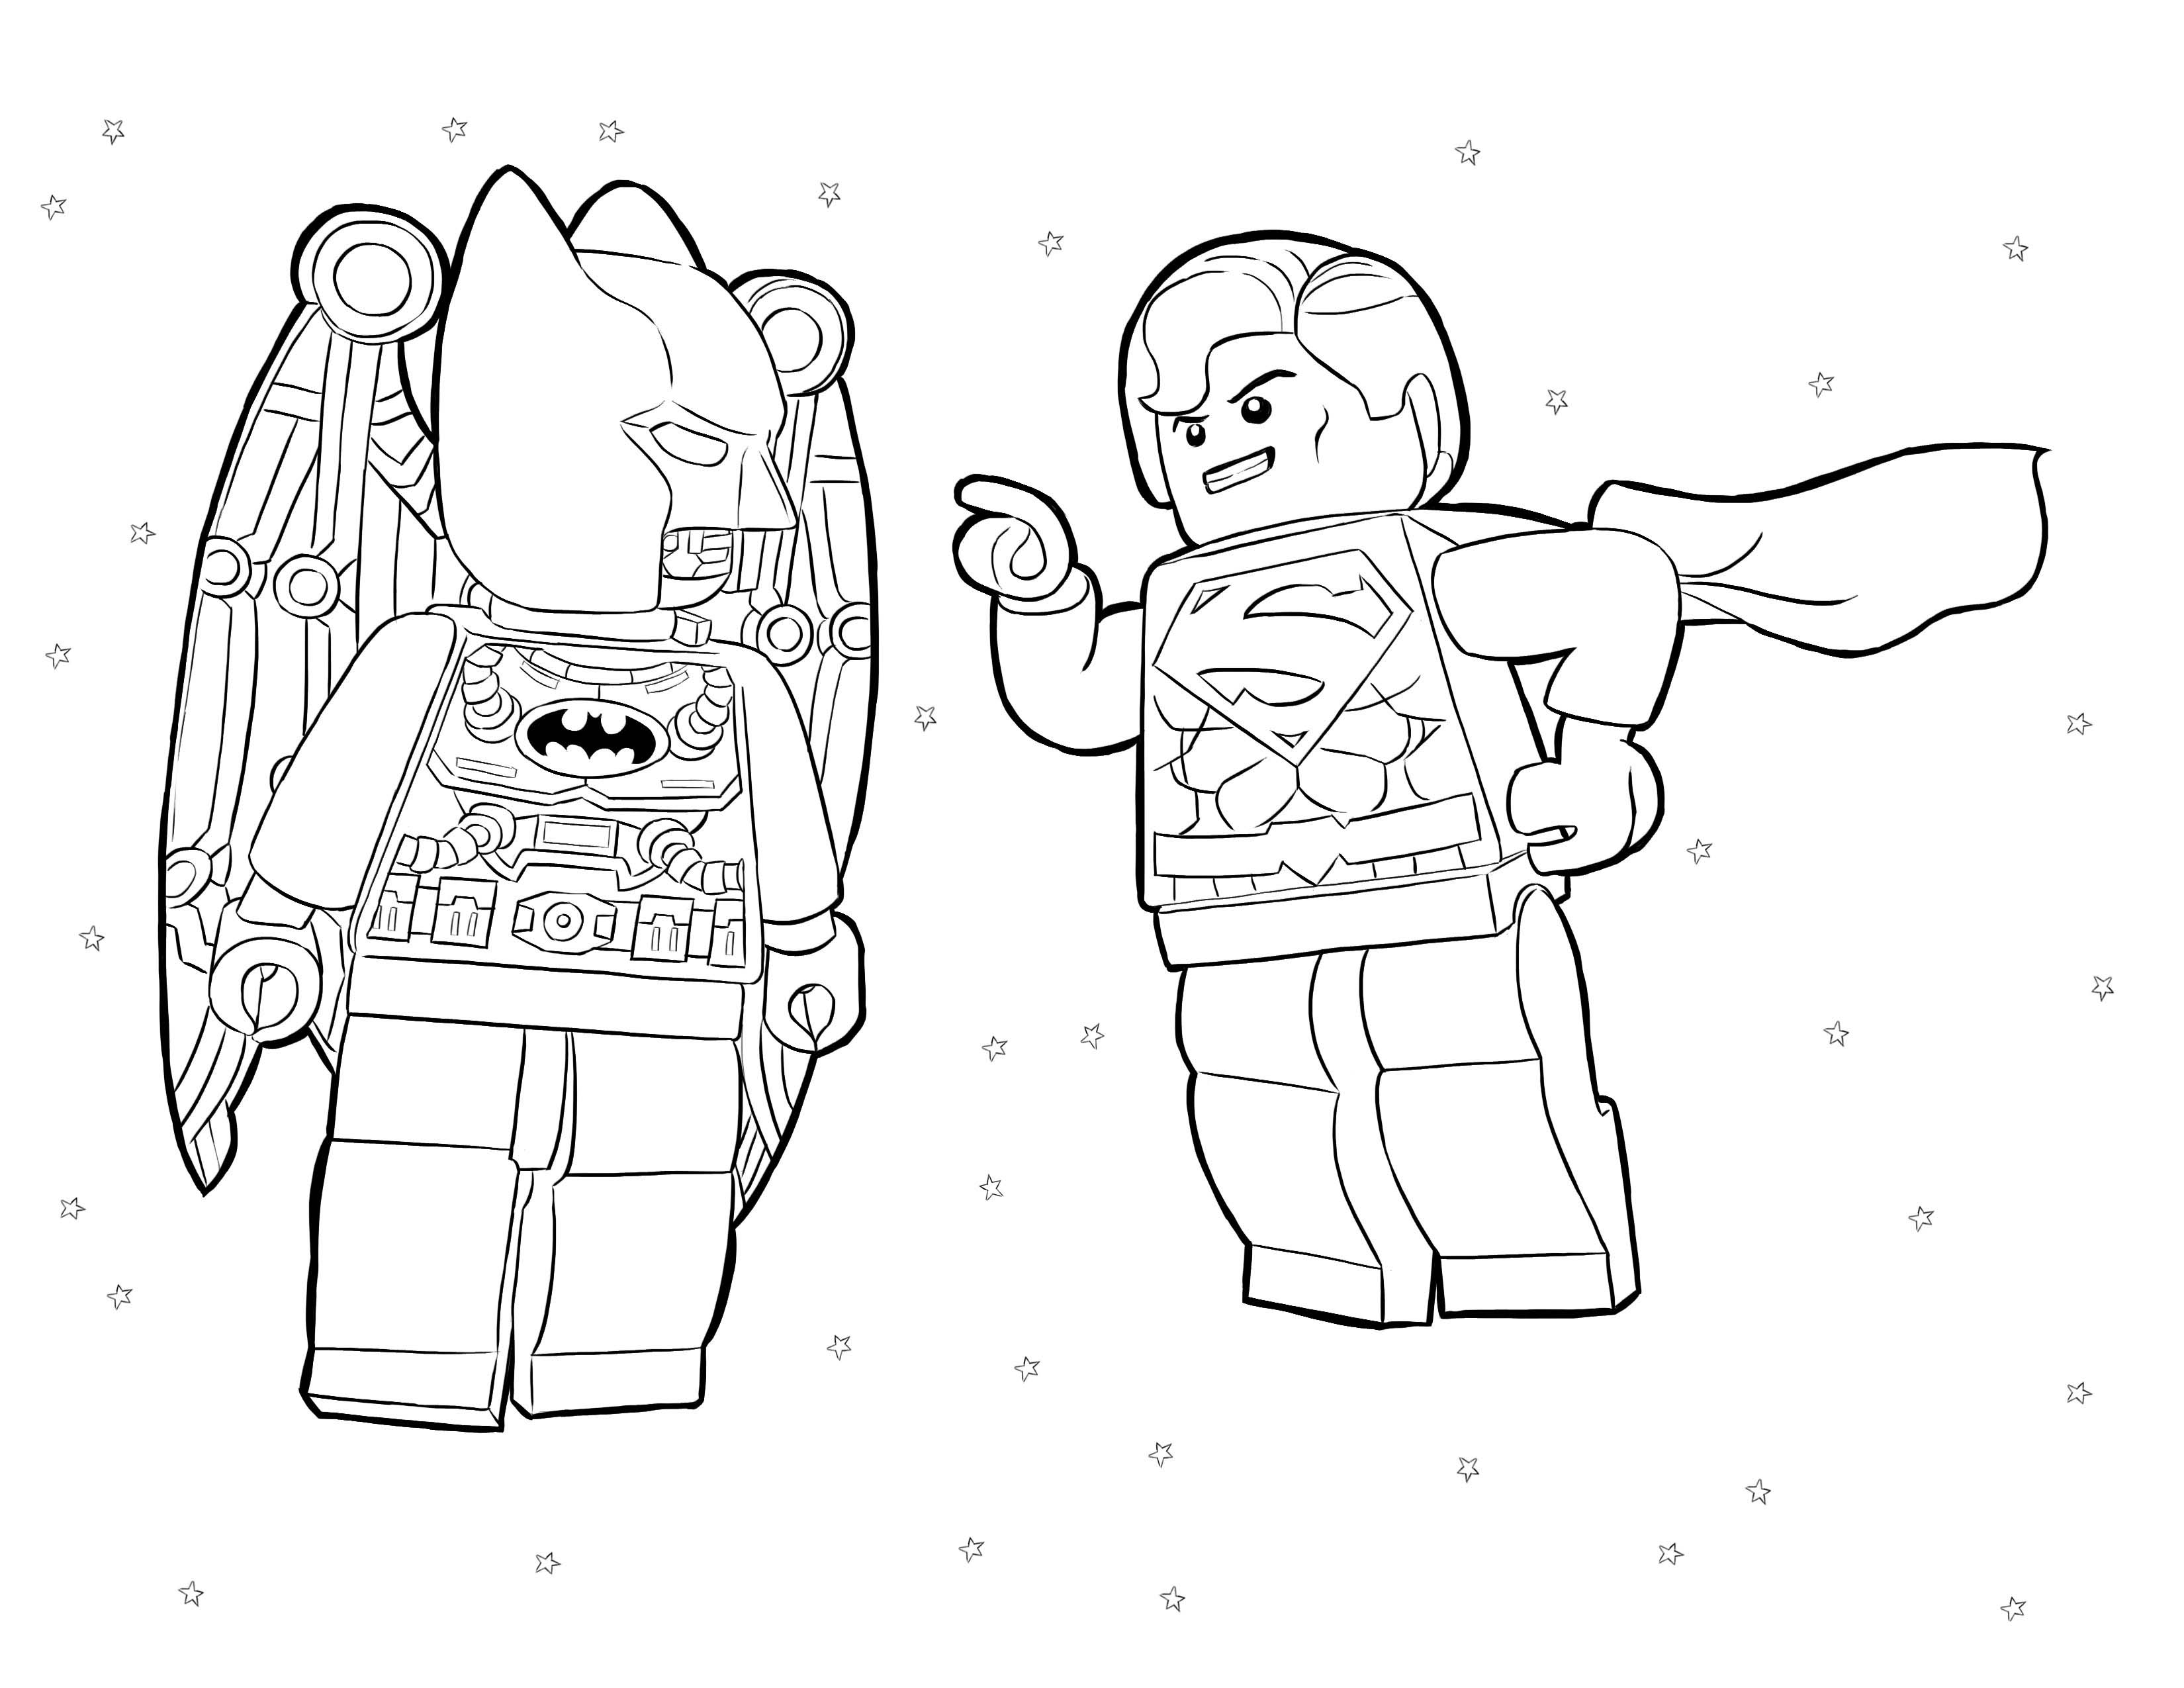 lego justice league coloring pages the lego batman movie coloring pages to download and print justice coloring league lego pages